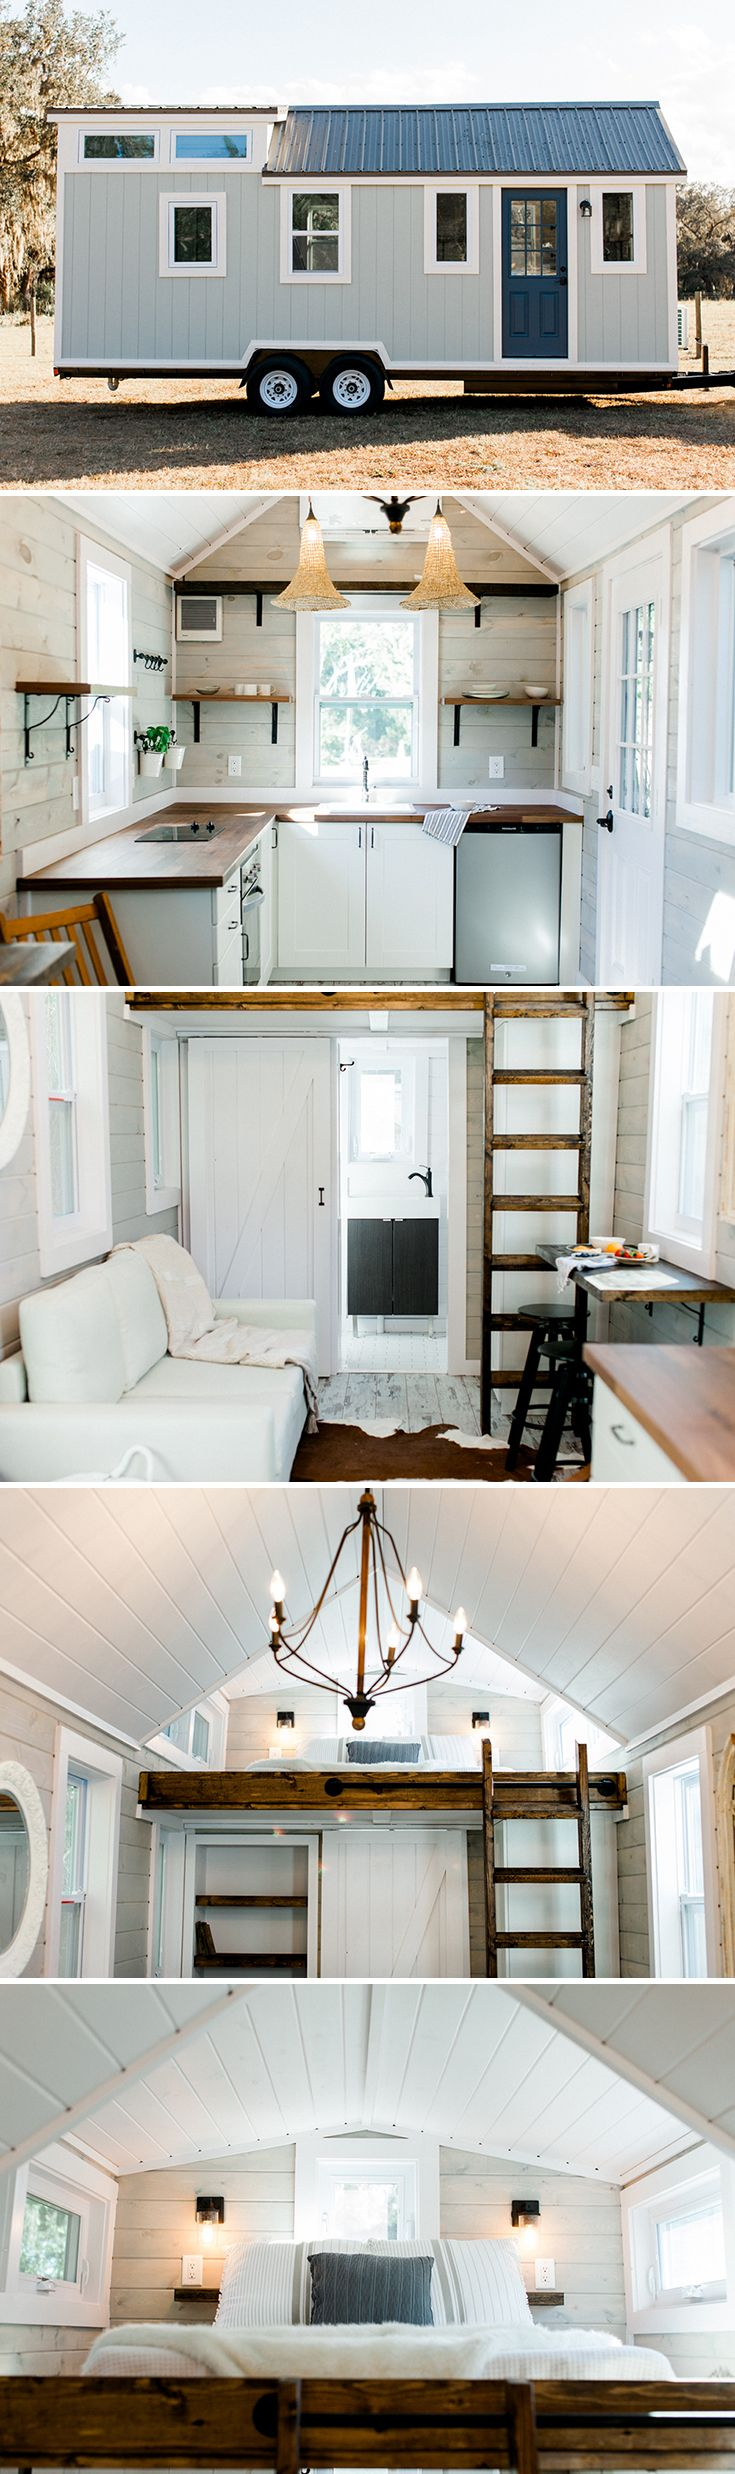 Tiny House Interior best 25+ tiny house layout ideas on pinterest | mini houses, tiny